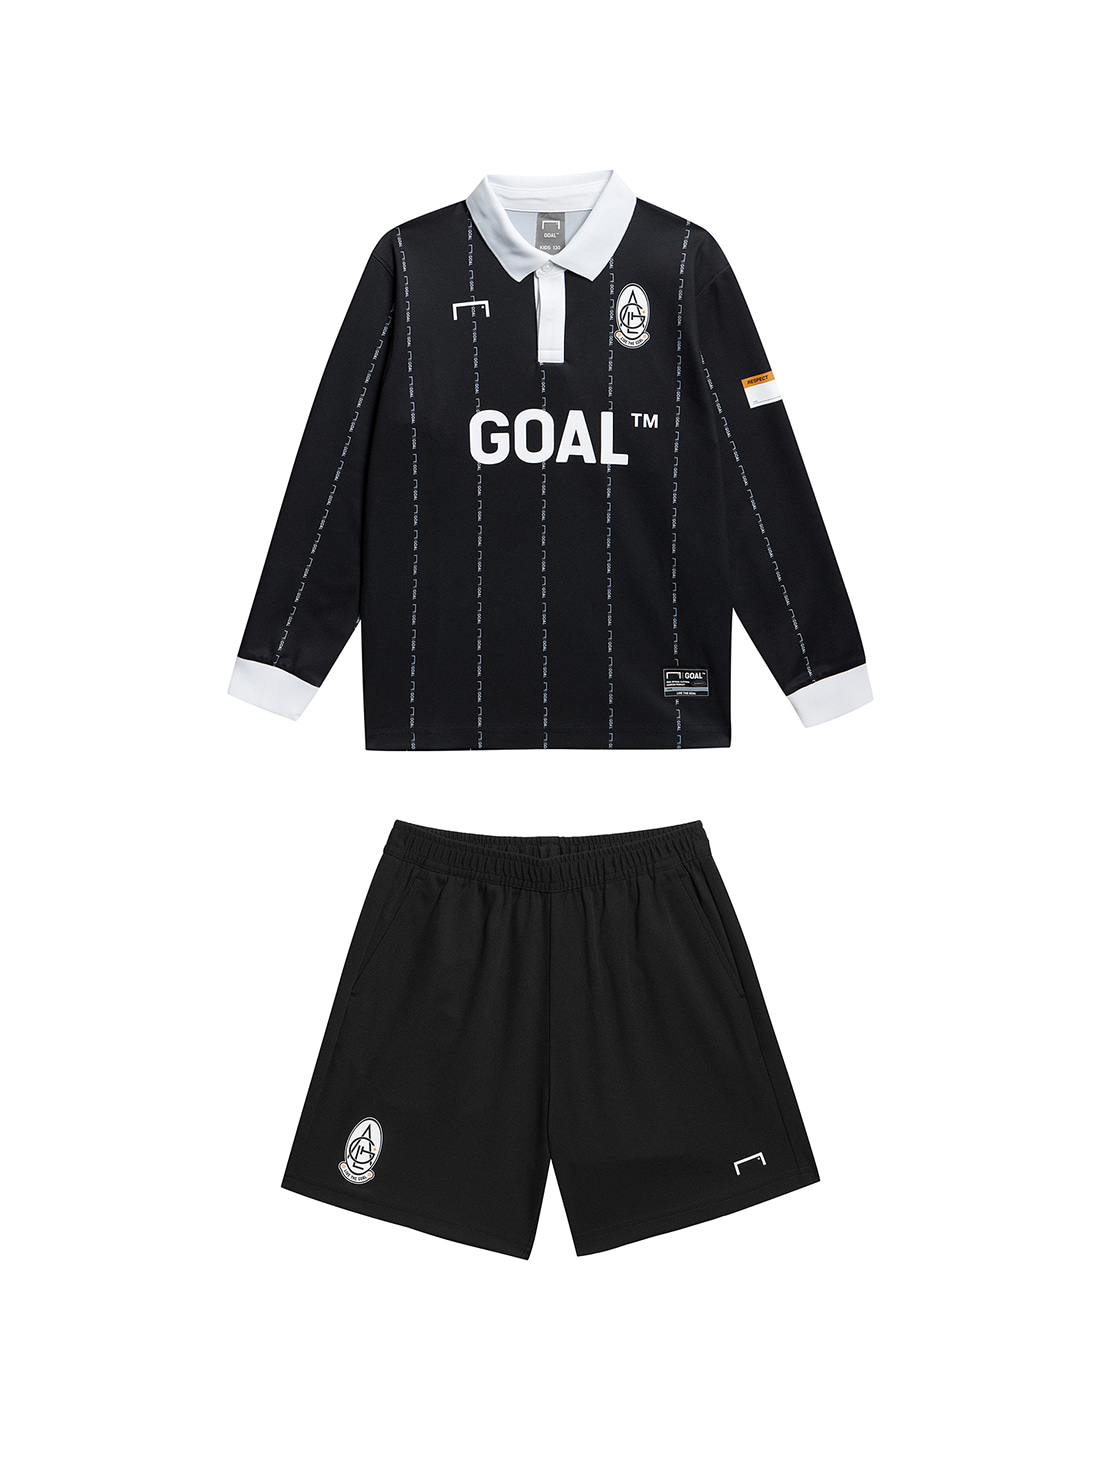 [10% OFF] (KIDS) PLAYER EMBLEM JERSEY & SHORTS SET